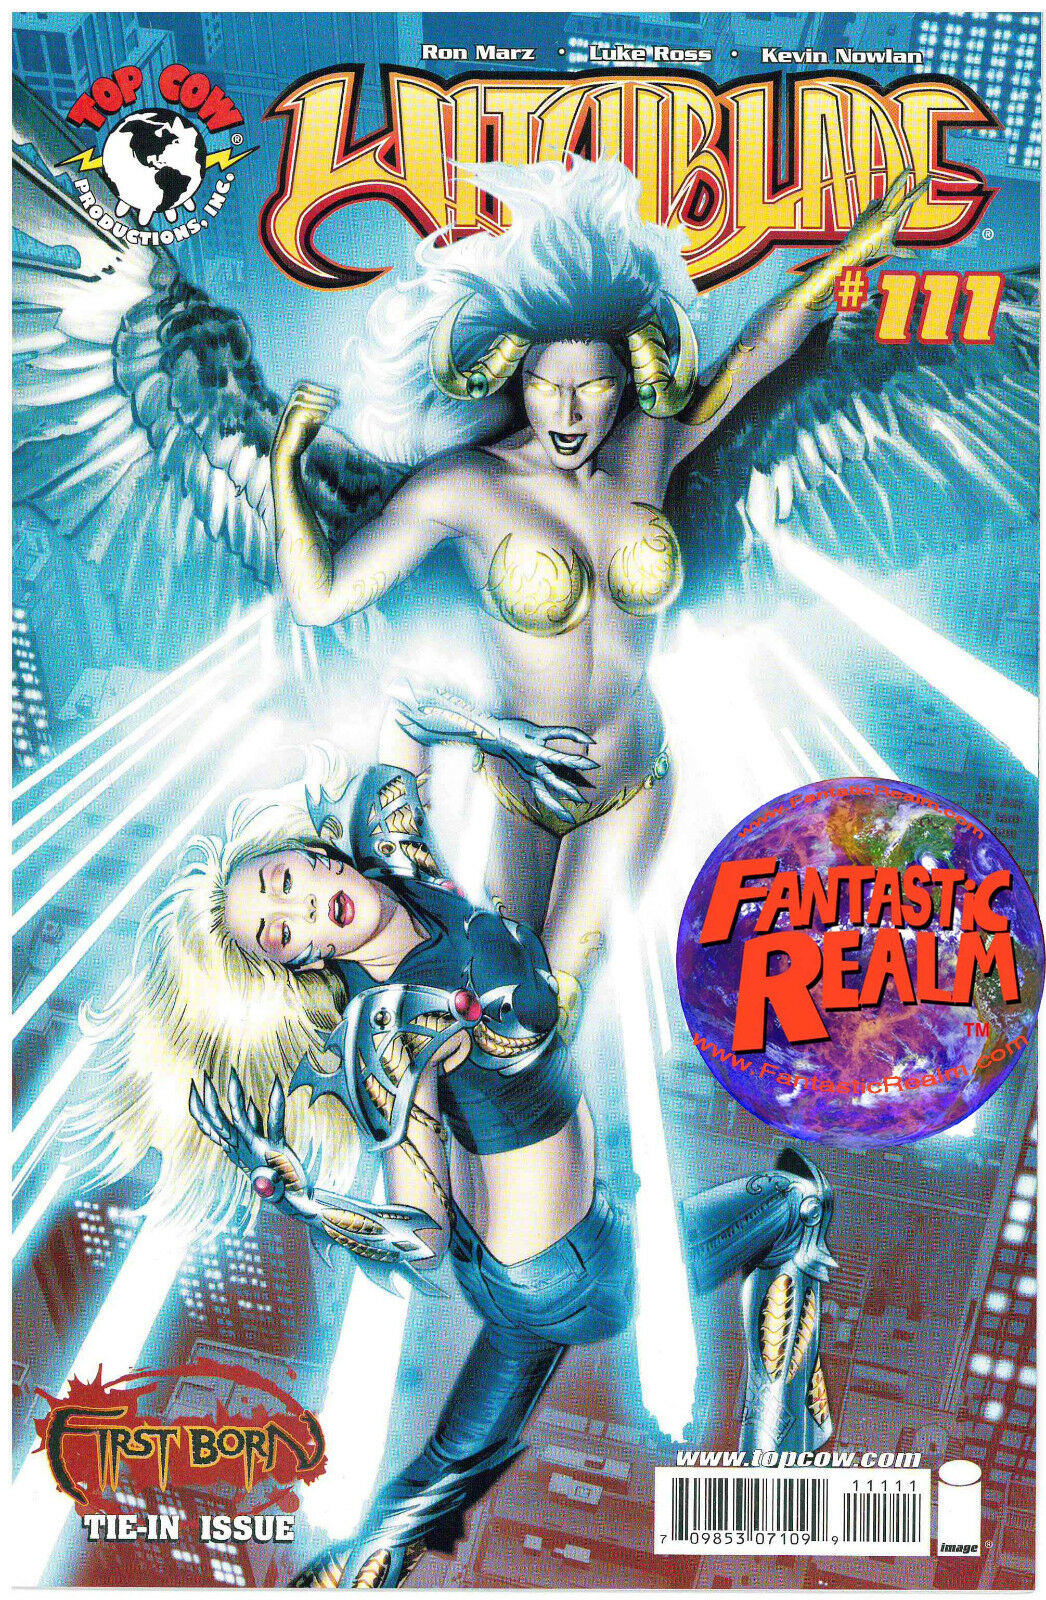 WITCHBLADE #111 FIRST BORN TIE-IN RON MARZ IMAGE TOP COW COMICS